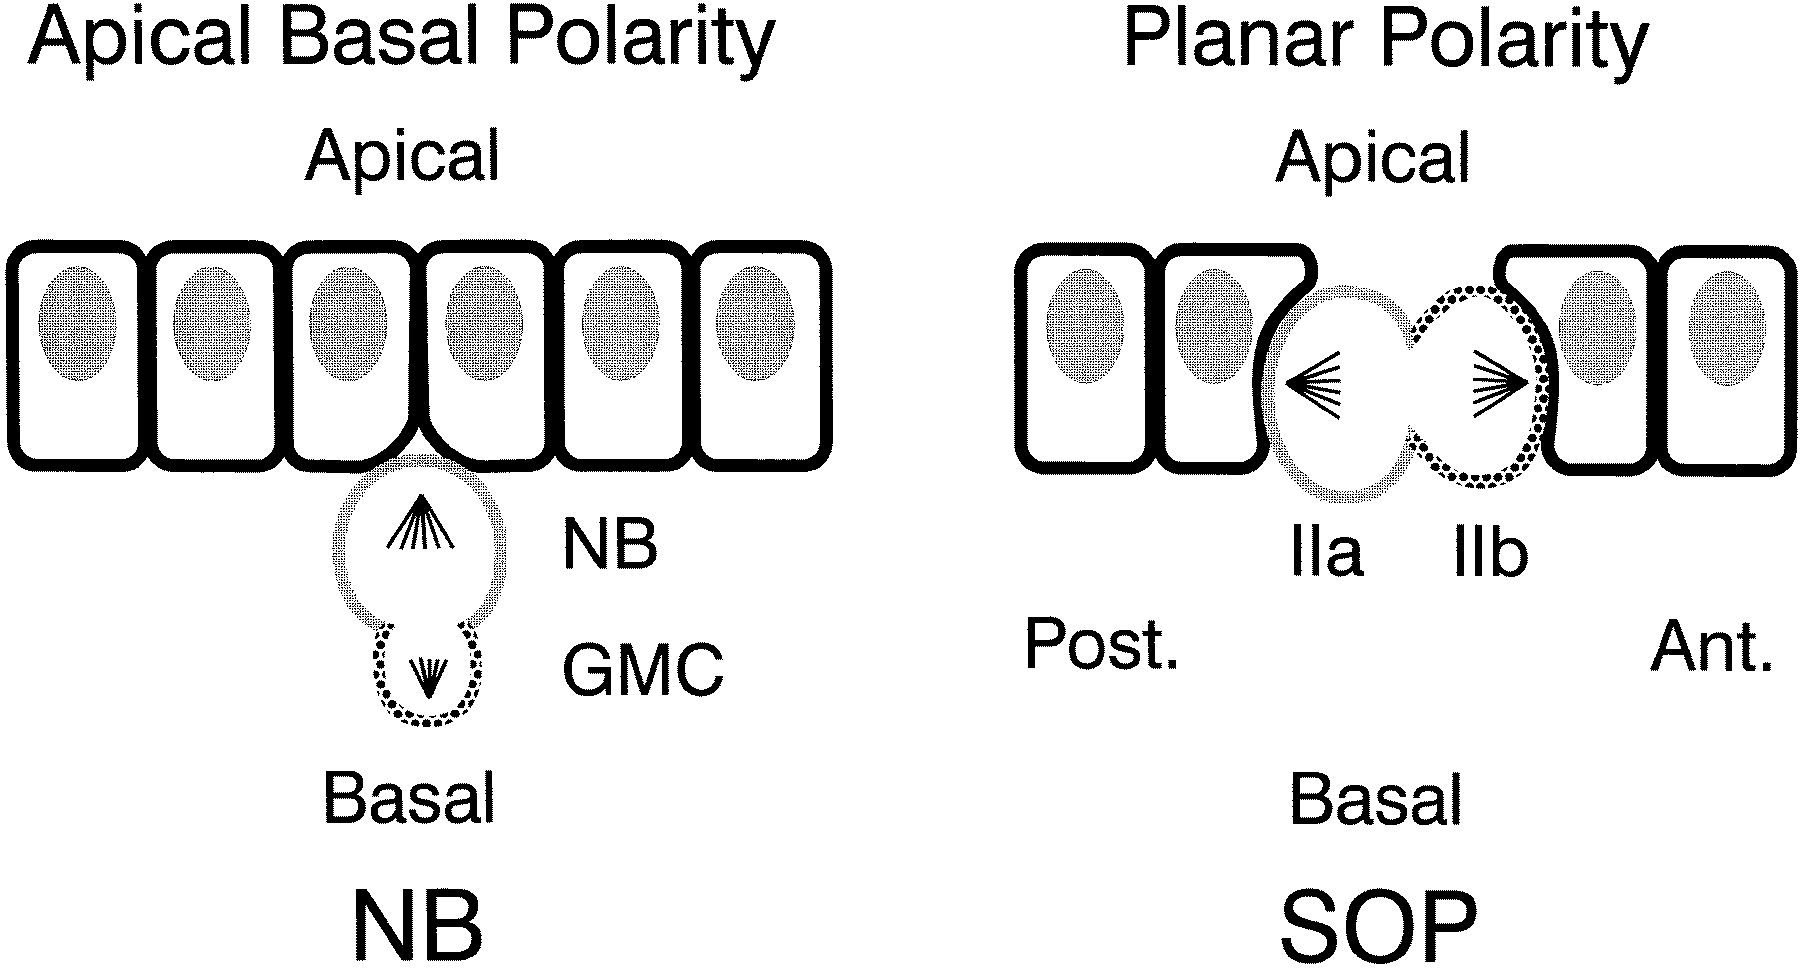 Polarity In Cell Division Cell